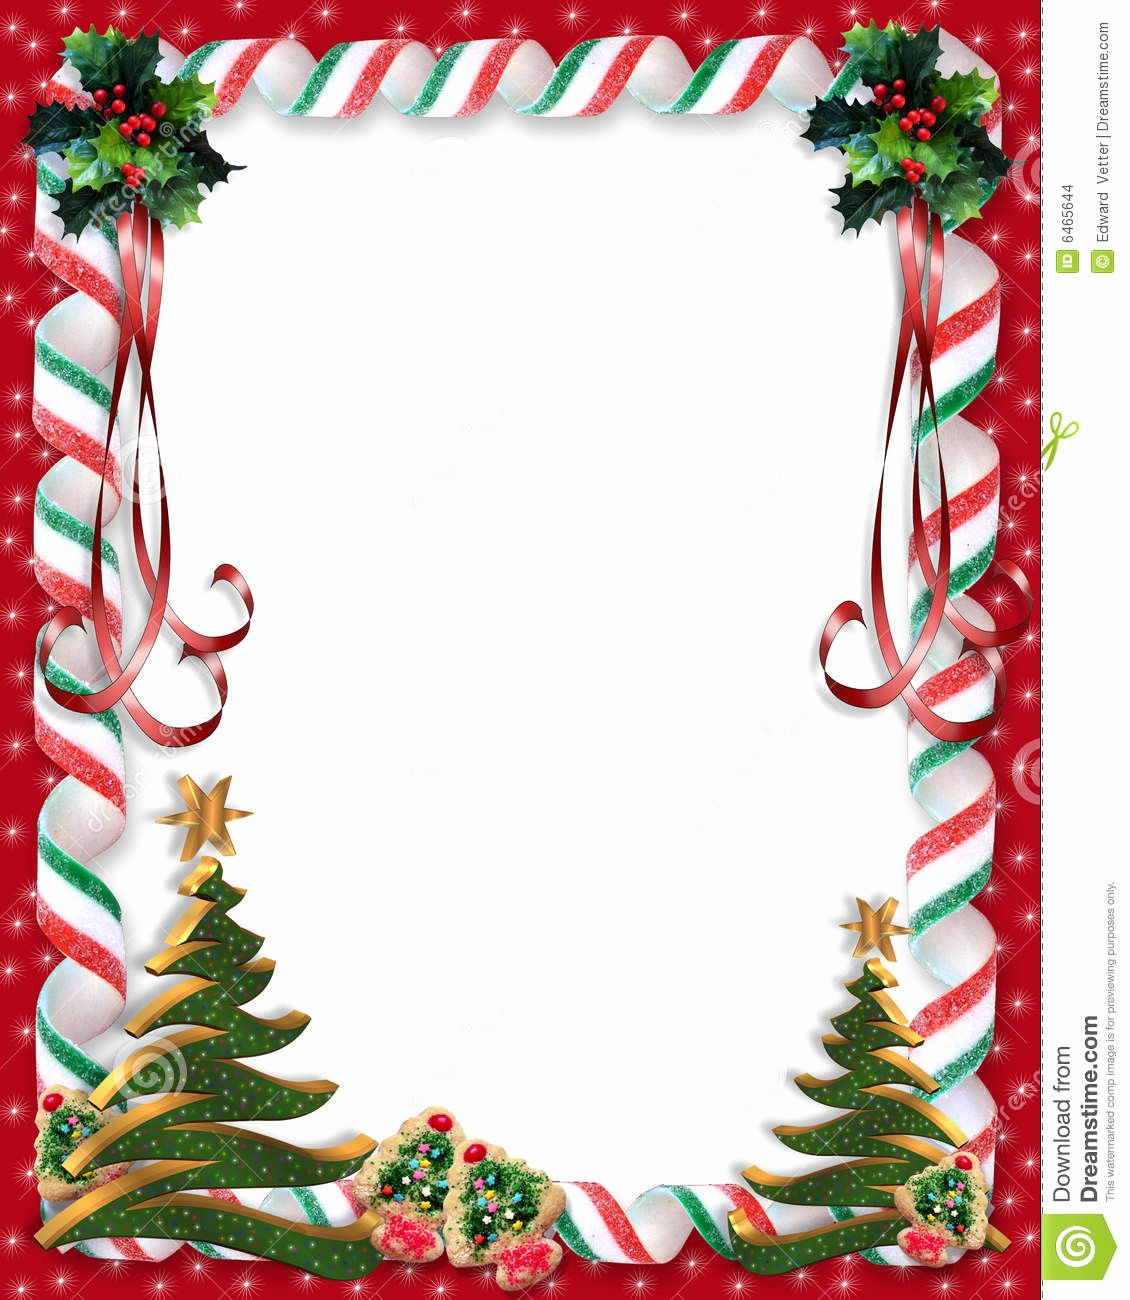 Free Christmas Borders for Letters Best Of Border for Christmas Letter – Festival Collections